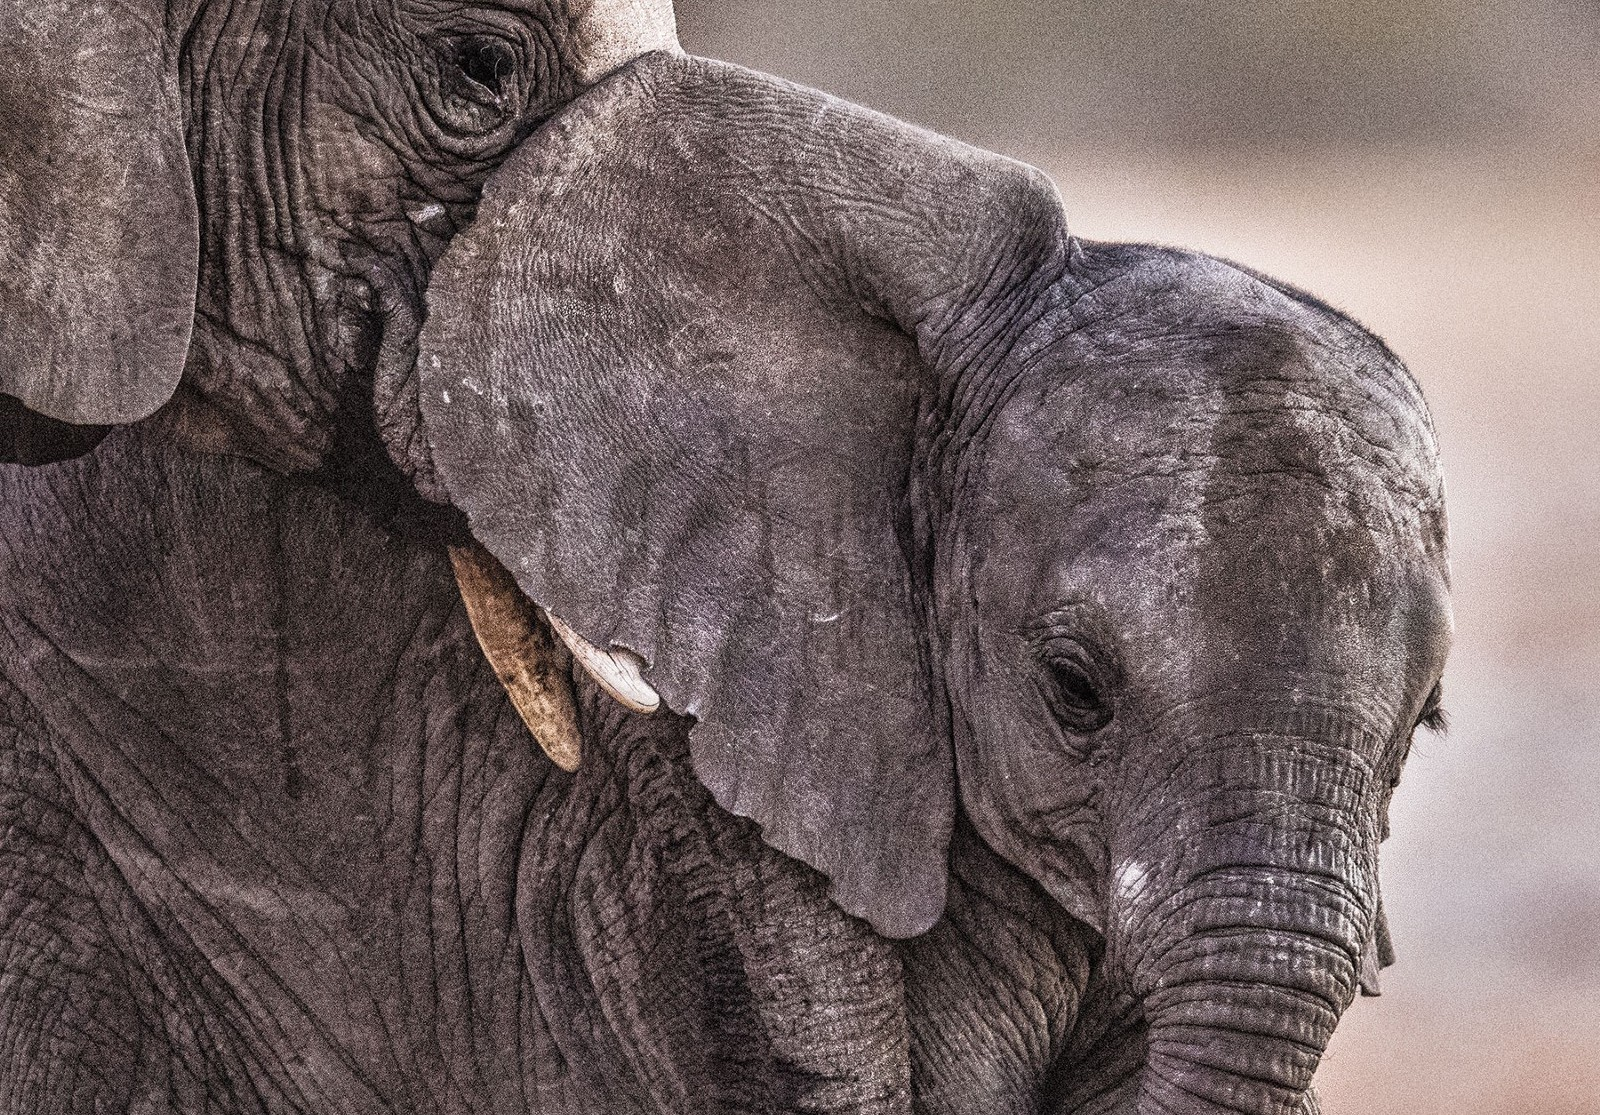 How Elephants Establish Who Is in Charge